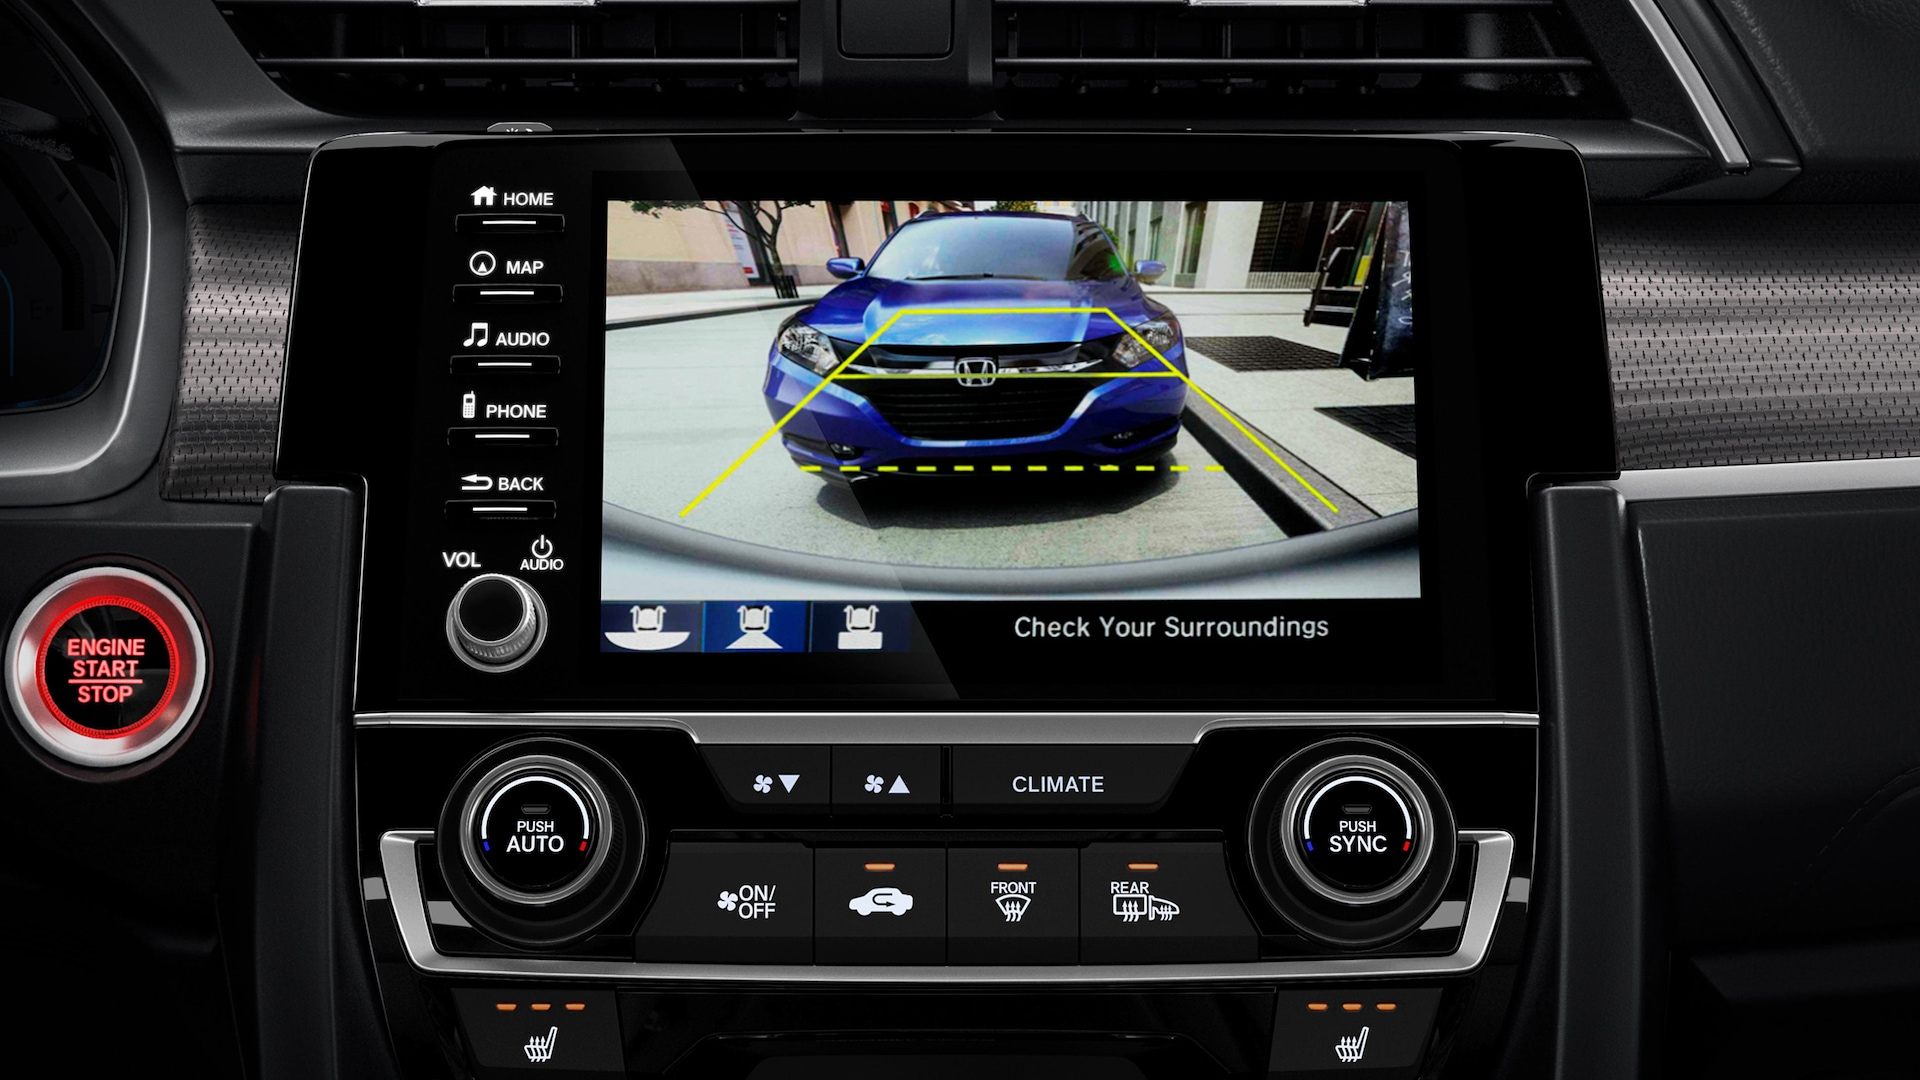 Multi-angle rearview camera detail on Display Audio touch-screen in the 2021 Honda Civic Touring Sedan.